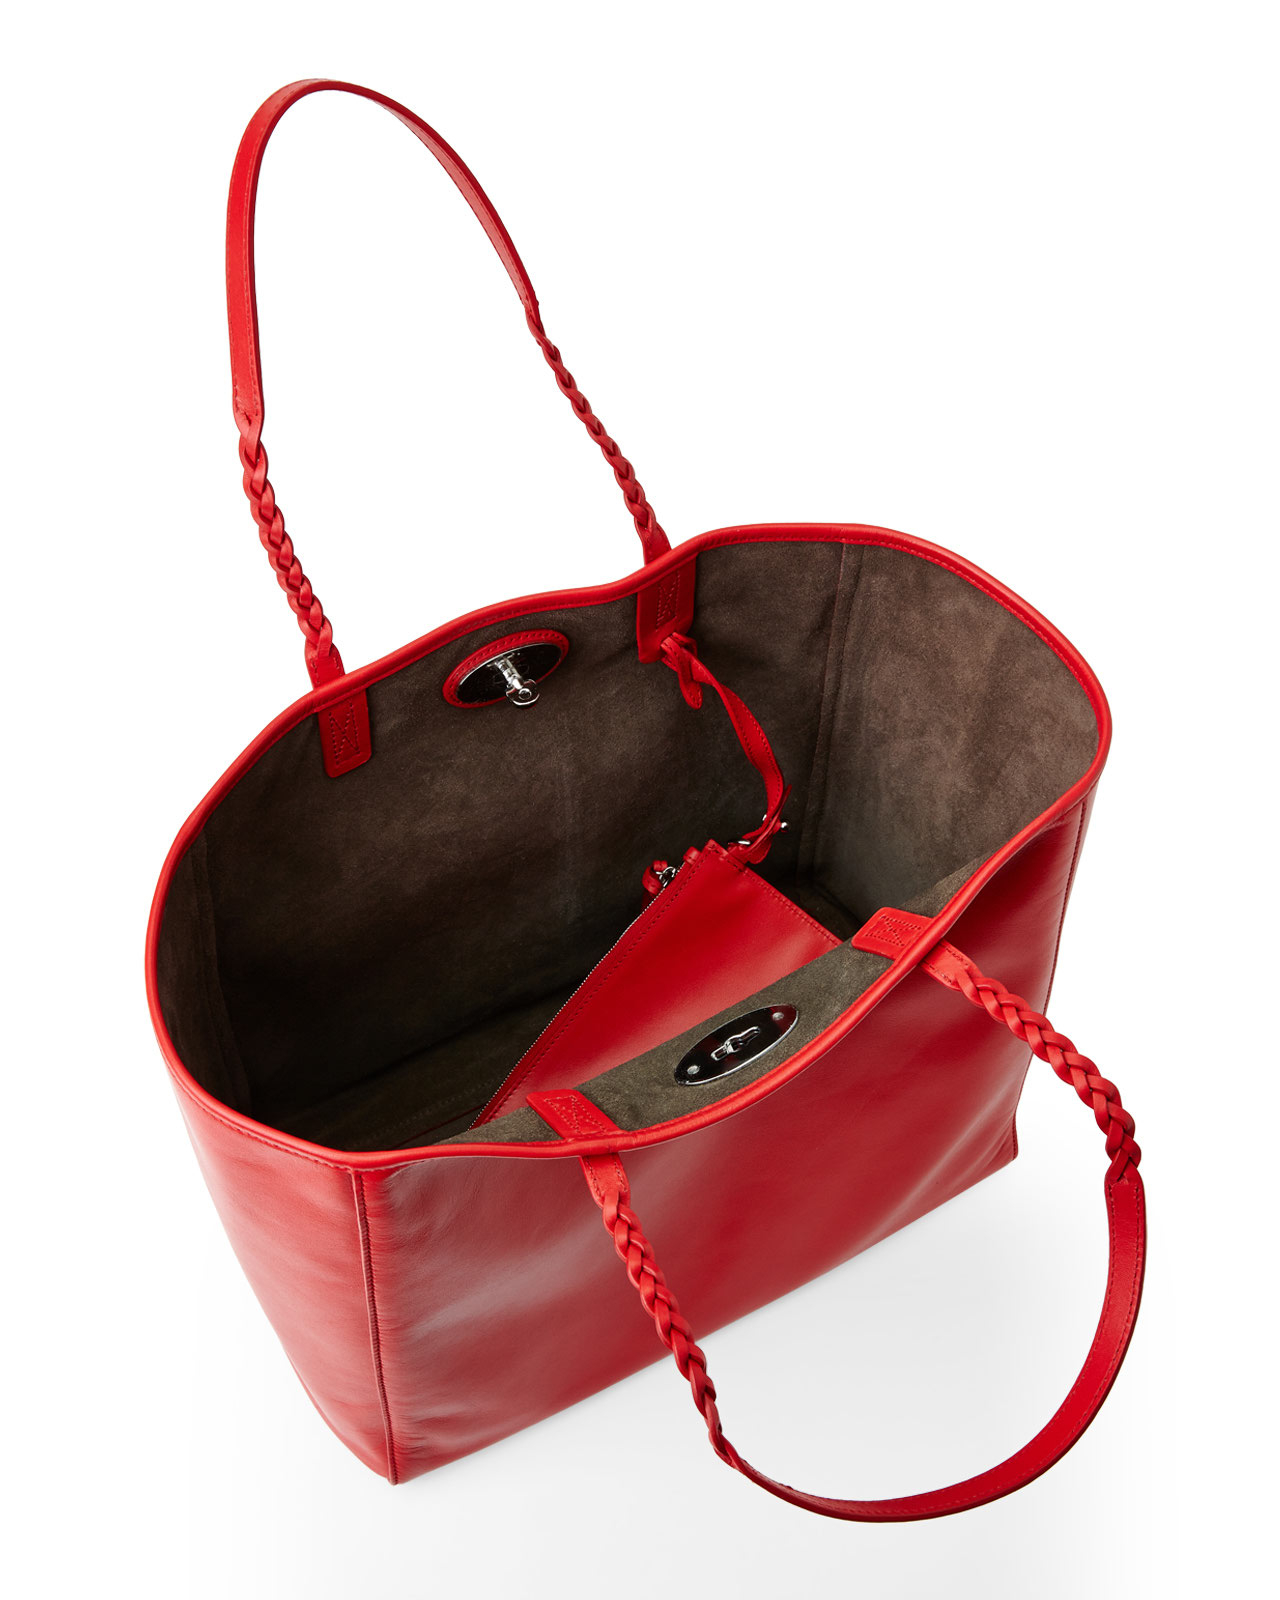 authentic lyst mulberry blossom nappa leather tote bag in red 2fd74 384d7   where can i buy lyst mulberry red medium dorset tote in red 56f19 4cbc9 c3e3fa28c37c6